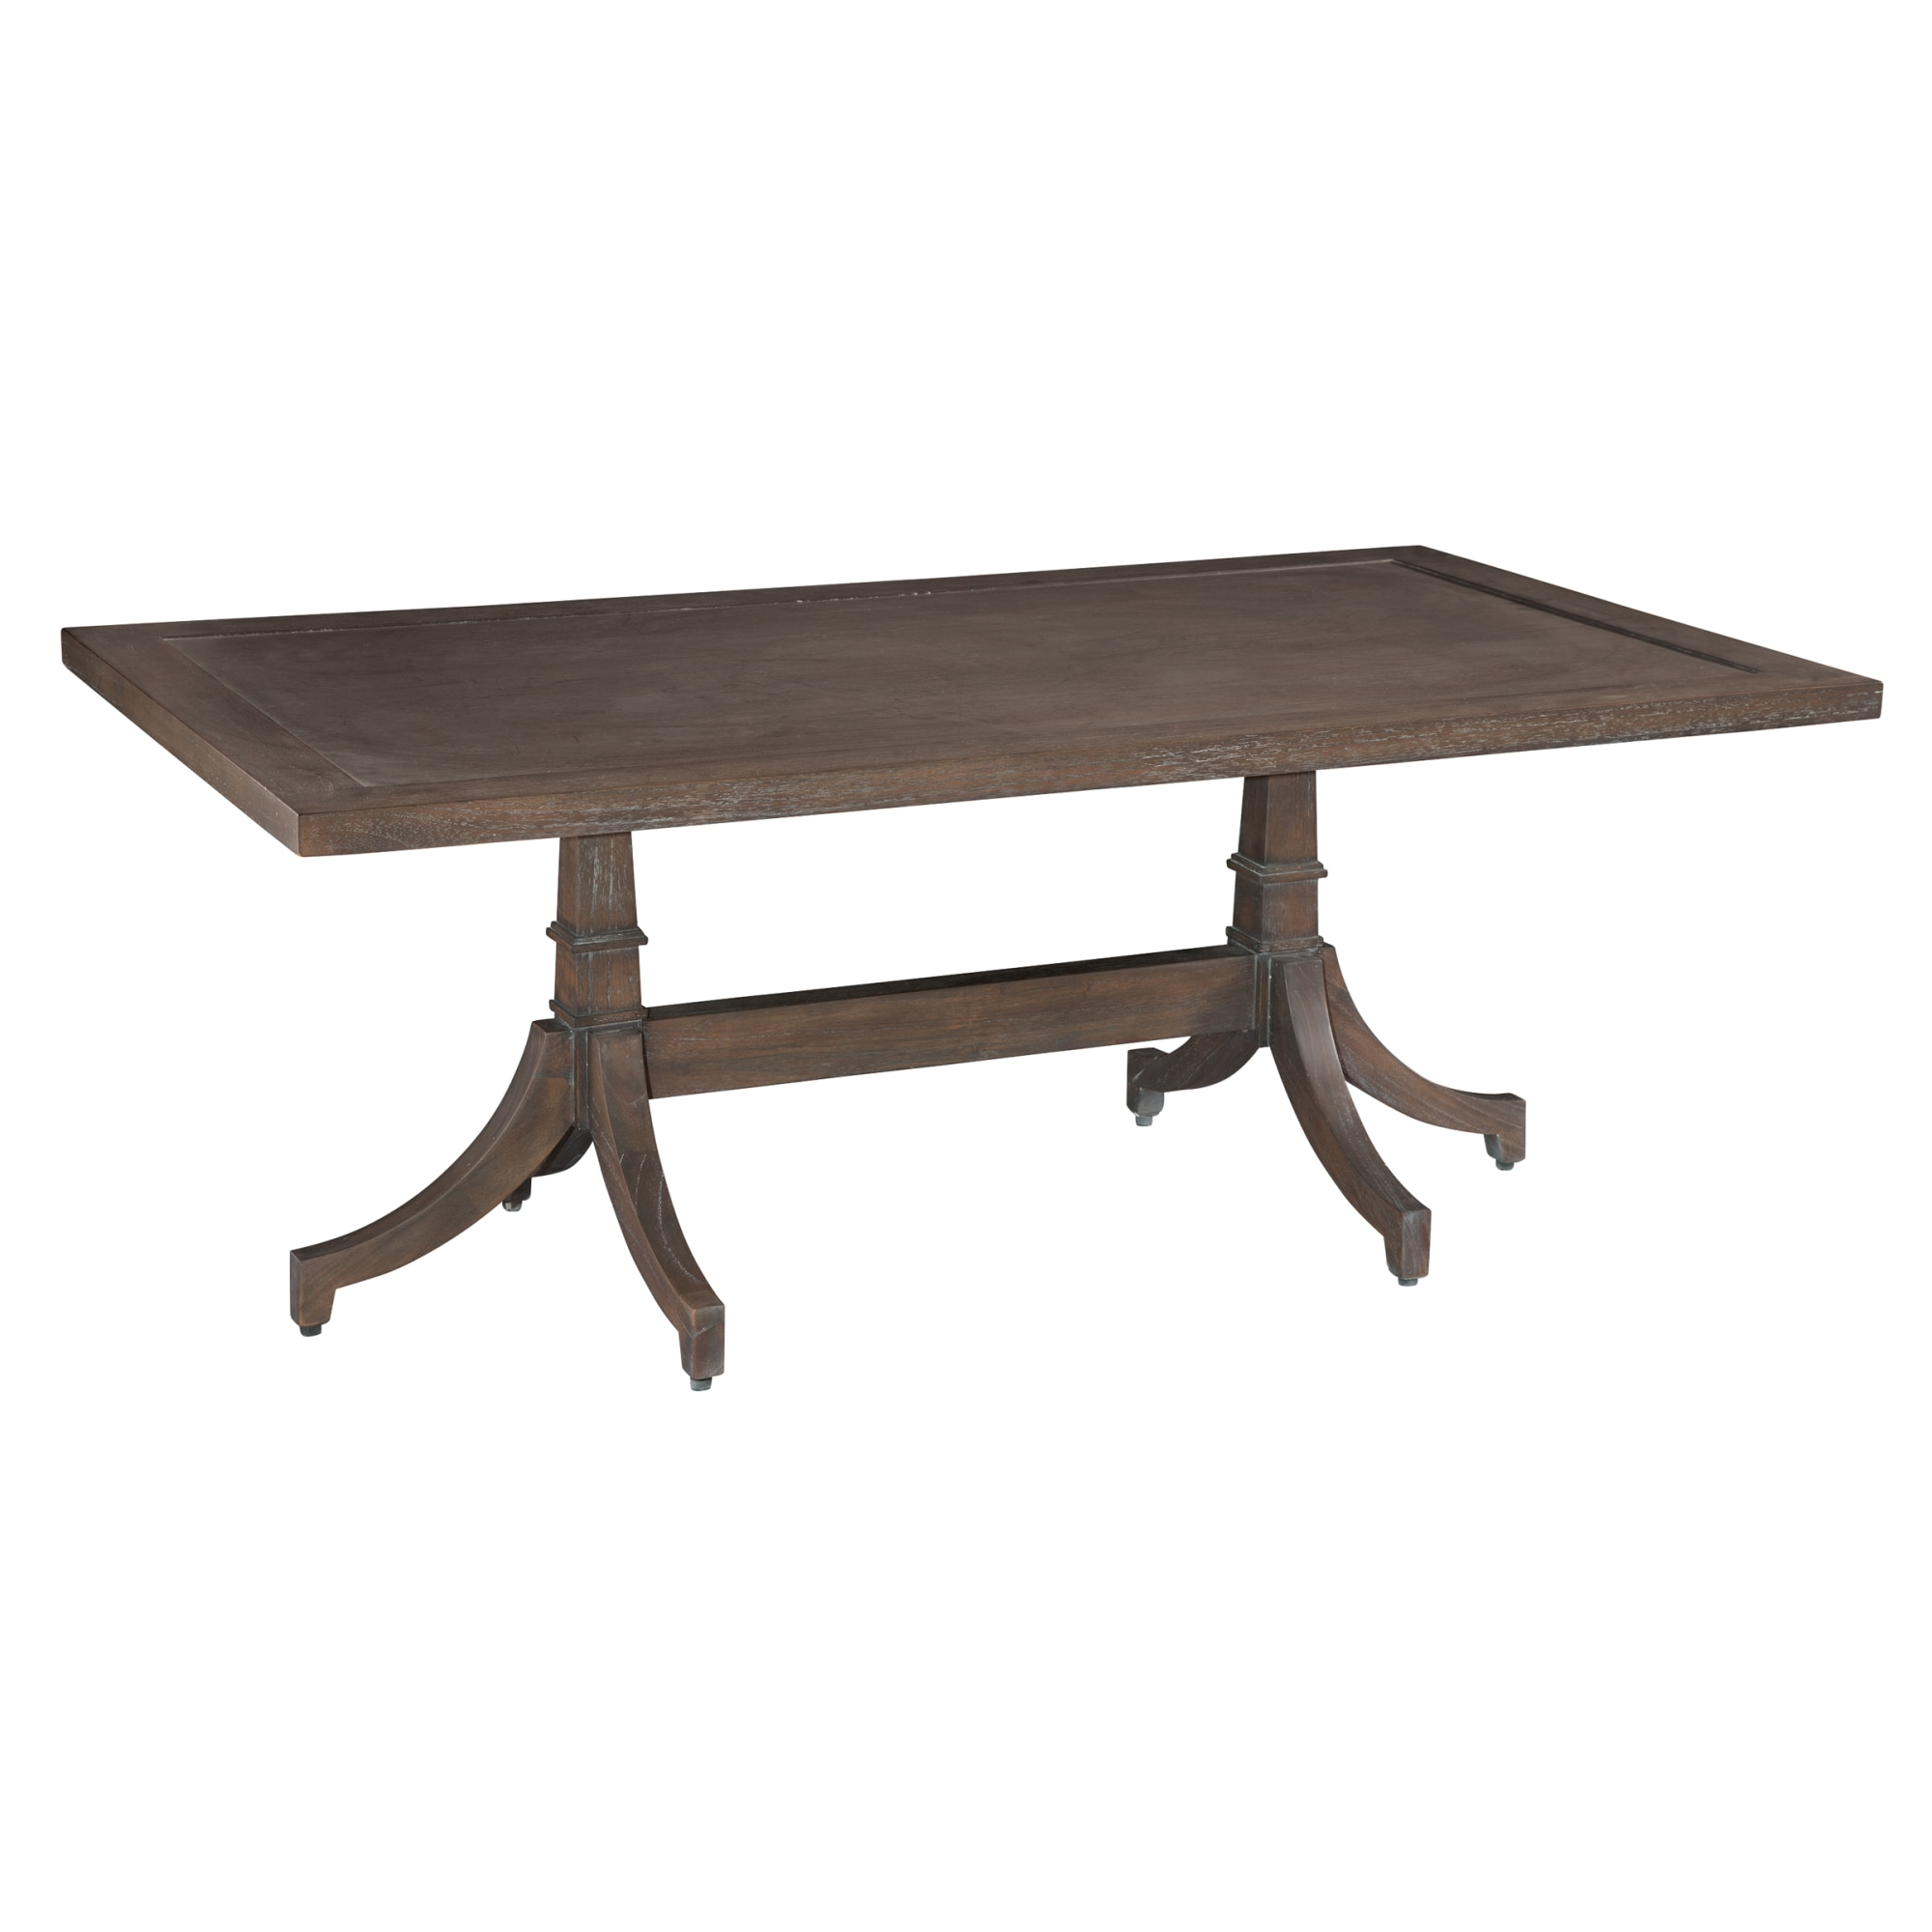 Image for 952200SU Urban Retreat Rectangular Coffee Table from Hekman Official Website